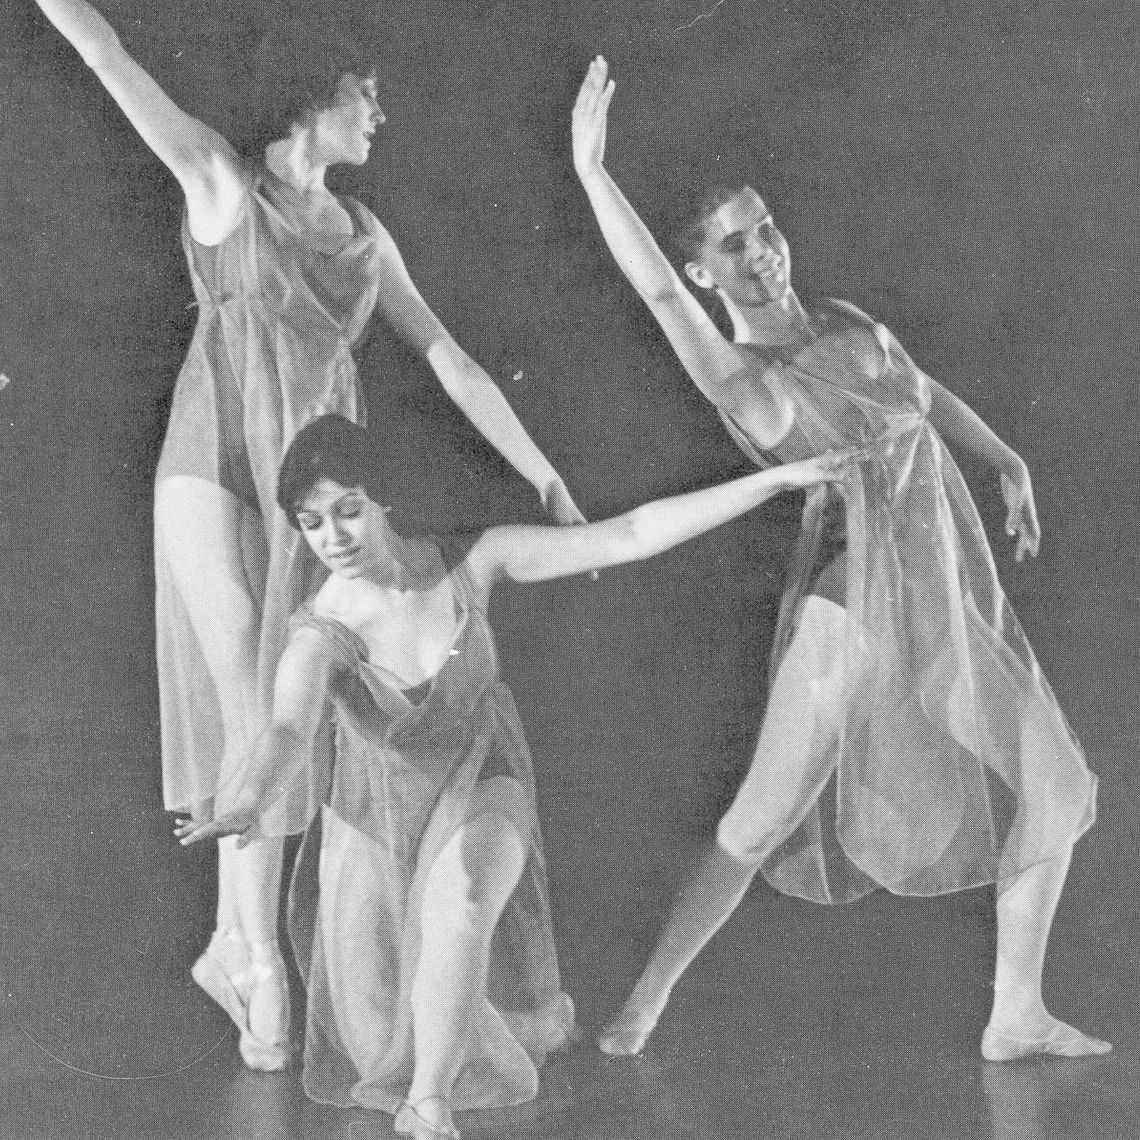 Students Christine Souders, Sue Rappaport and Beth Haller dance to Johann Strauss' Blue Danube Waltz as the opening act for the spring dance concert, April 7 and 8, 1978.